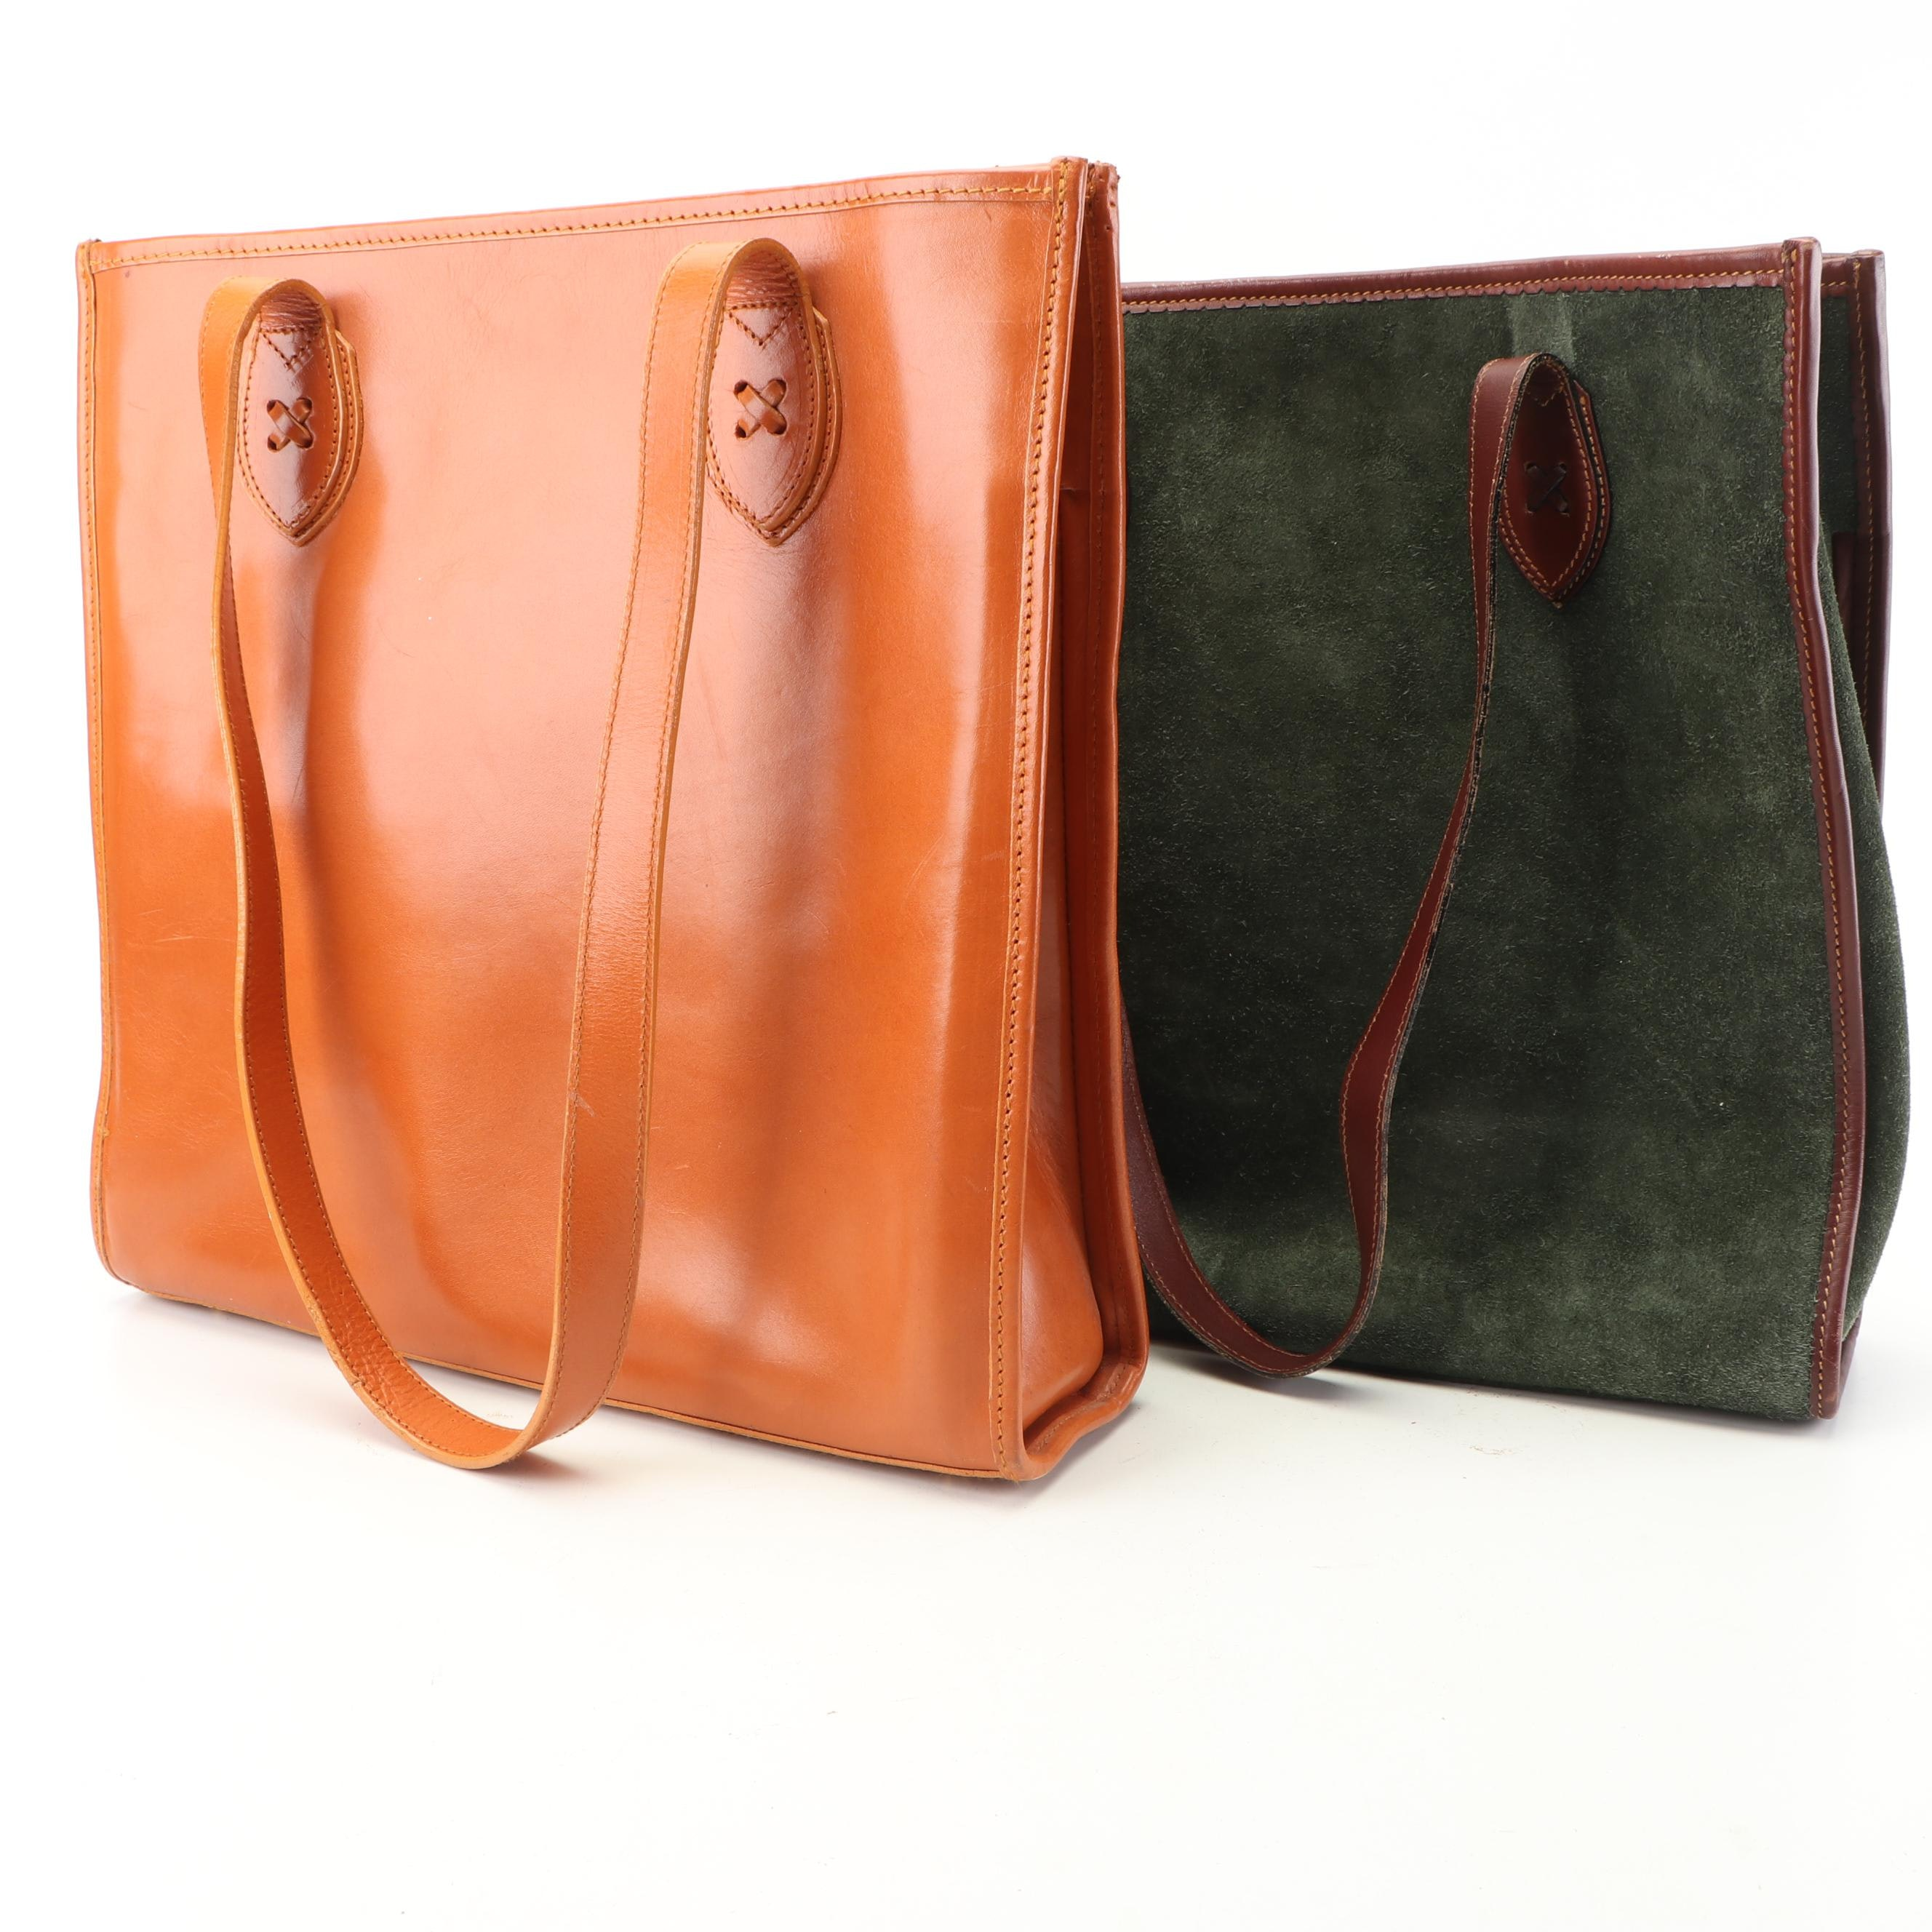 Angel Serrano and Other Leather and Suede Totes and Planners